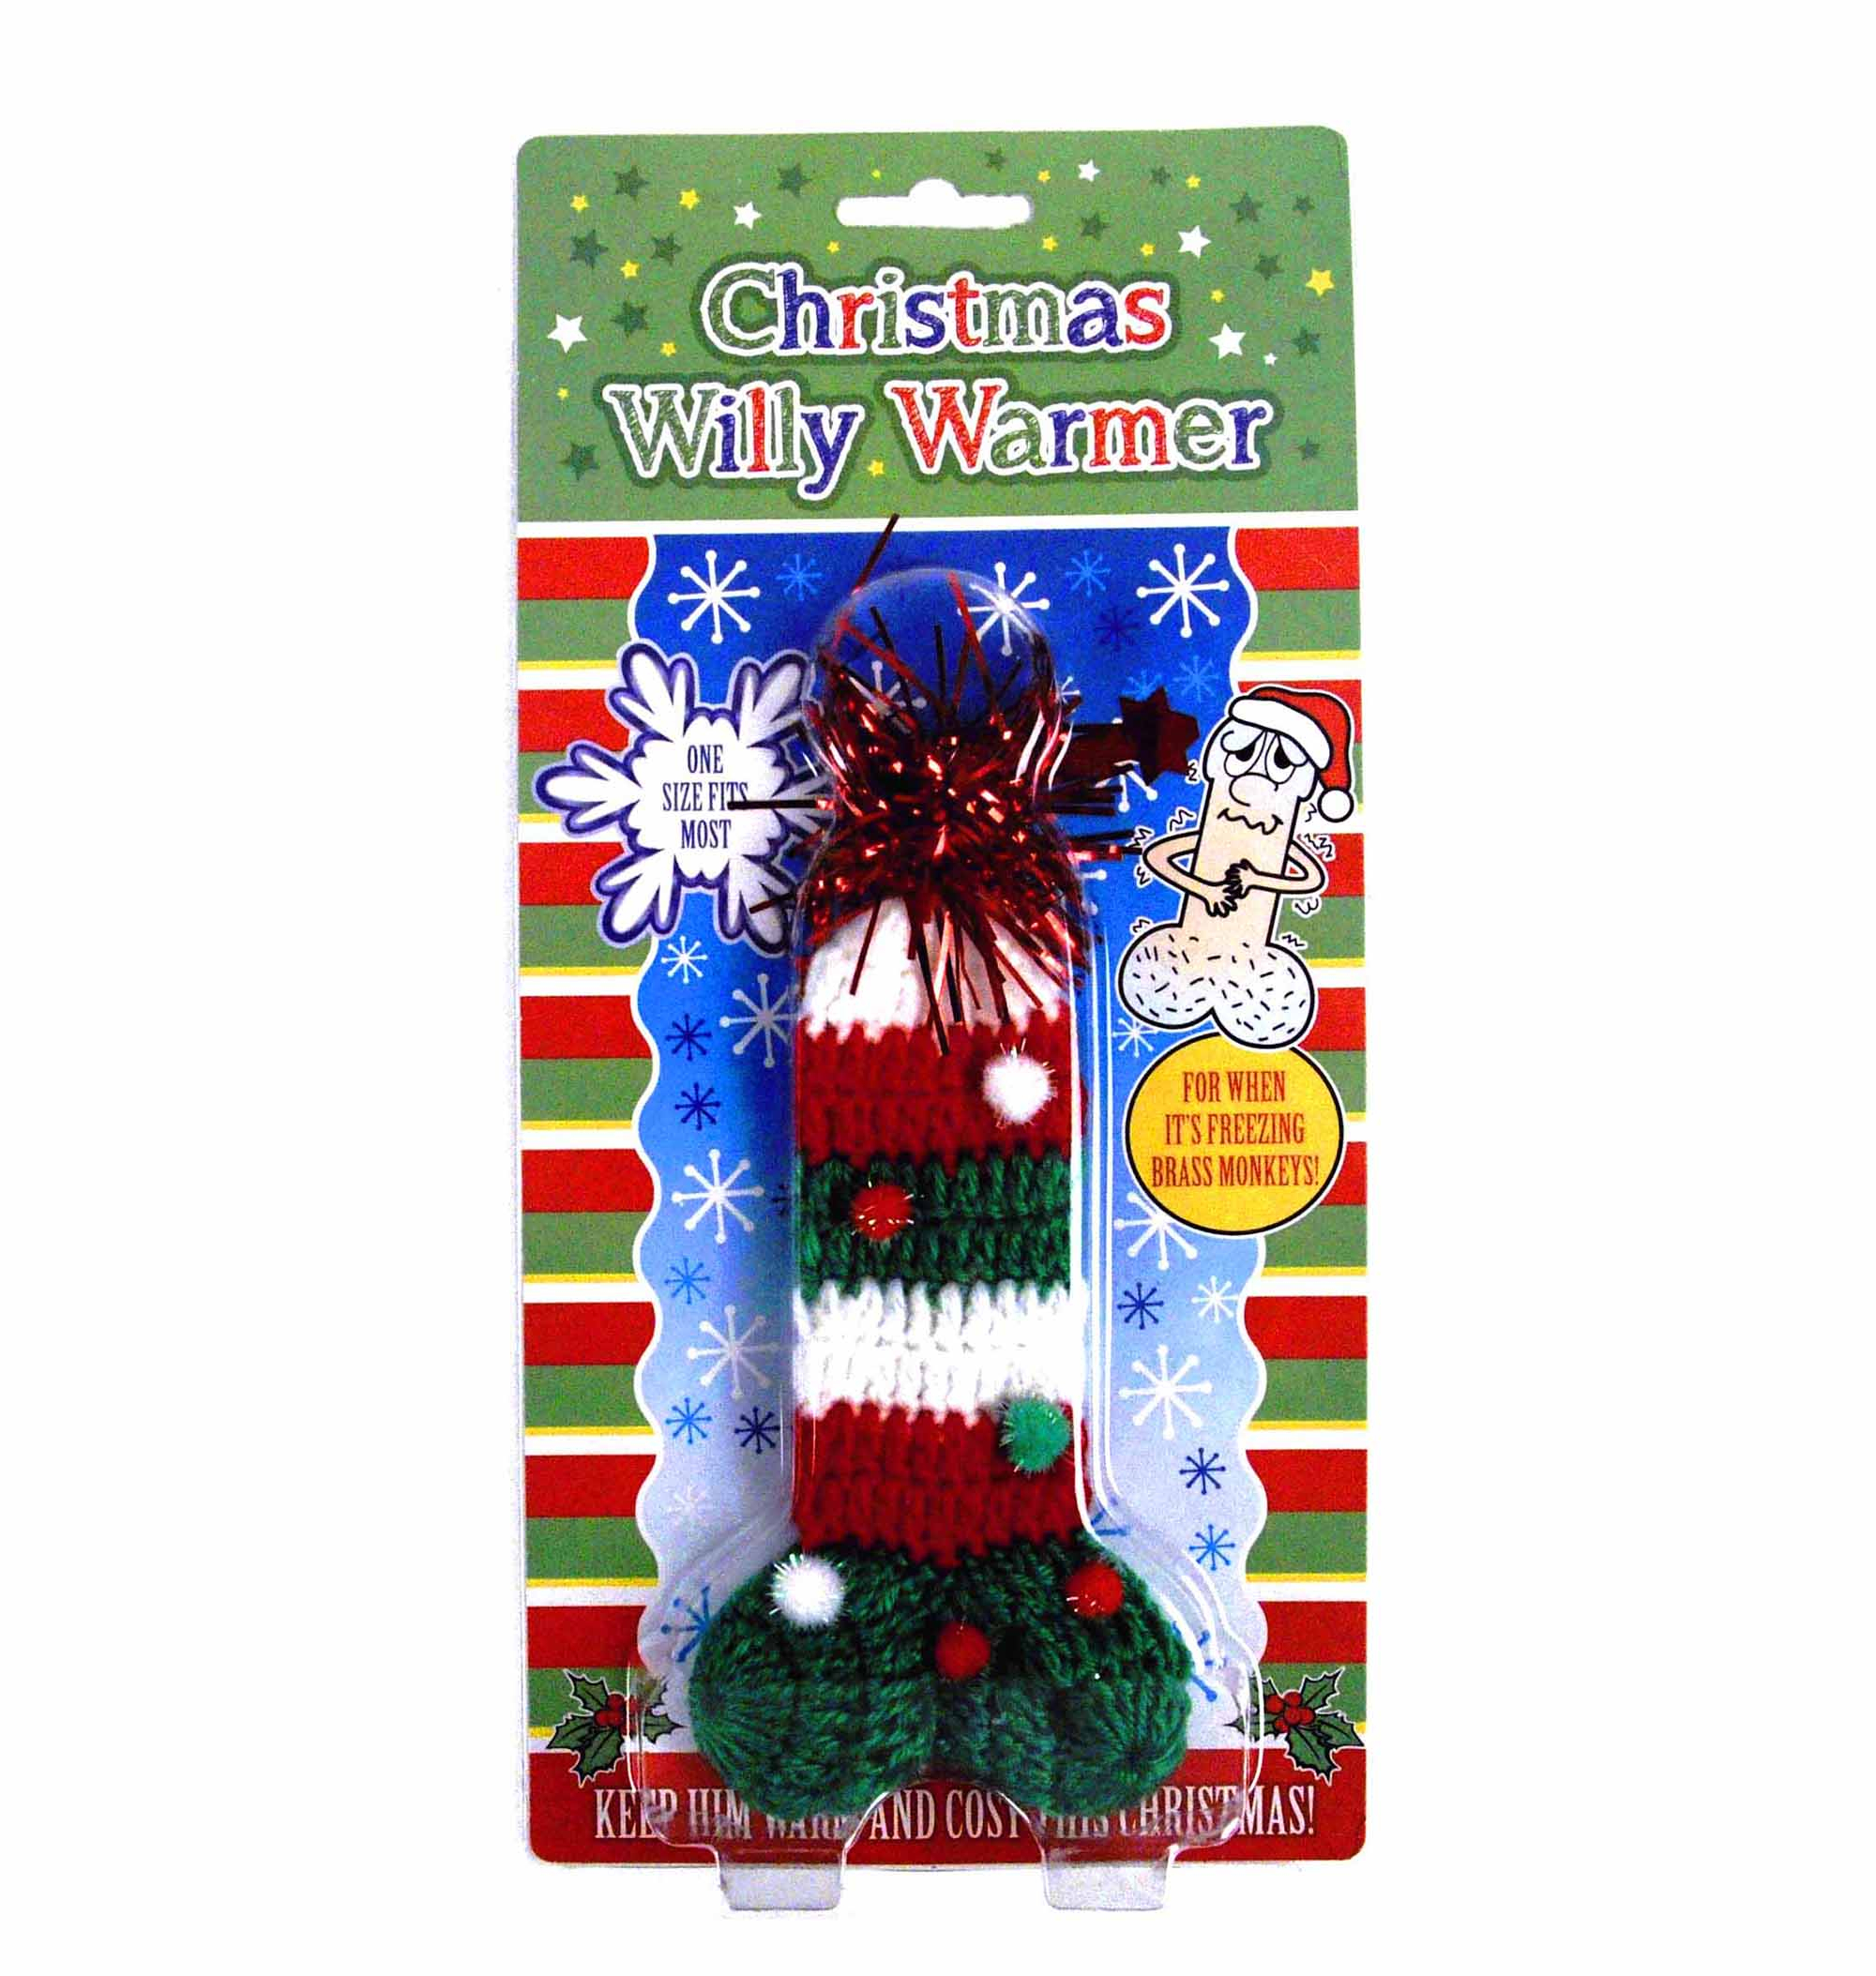 Willie Warmer Knitting Pattern Free Christmas Knitted Willy Warmer